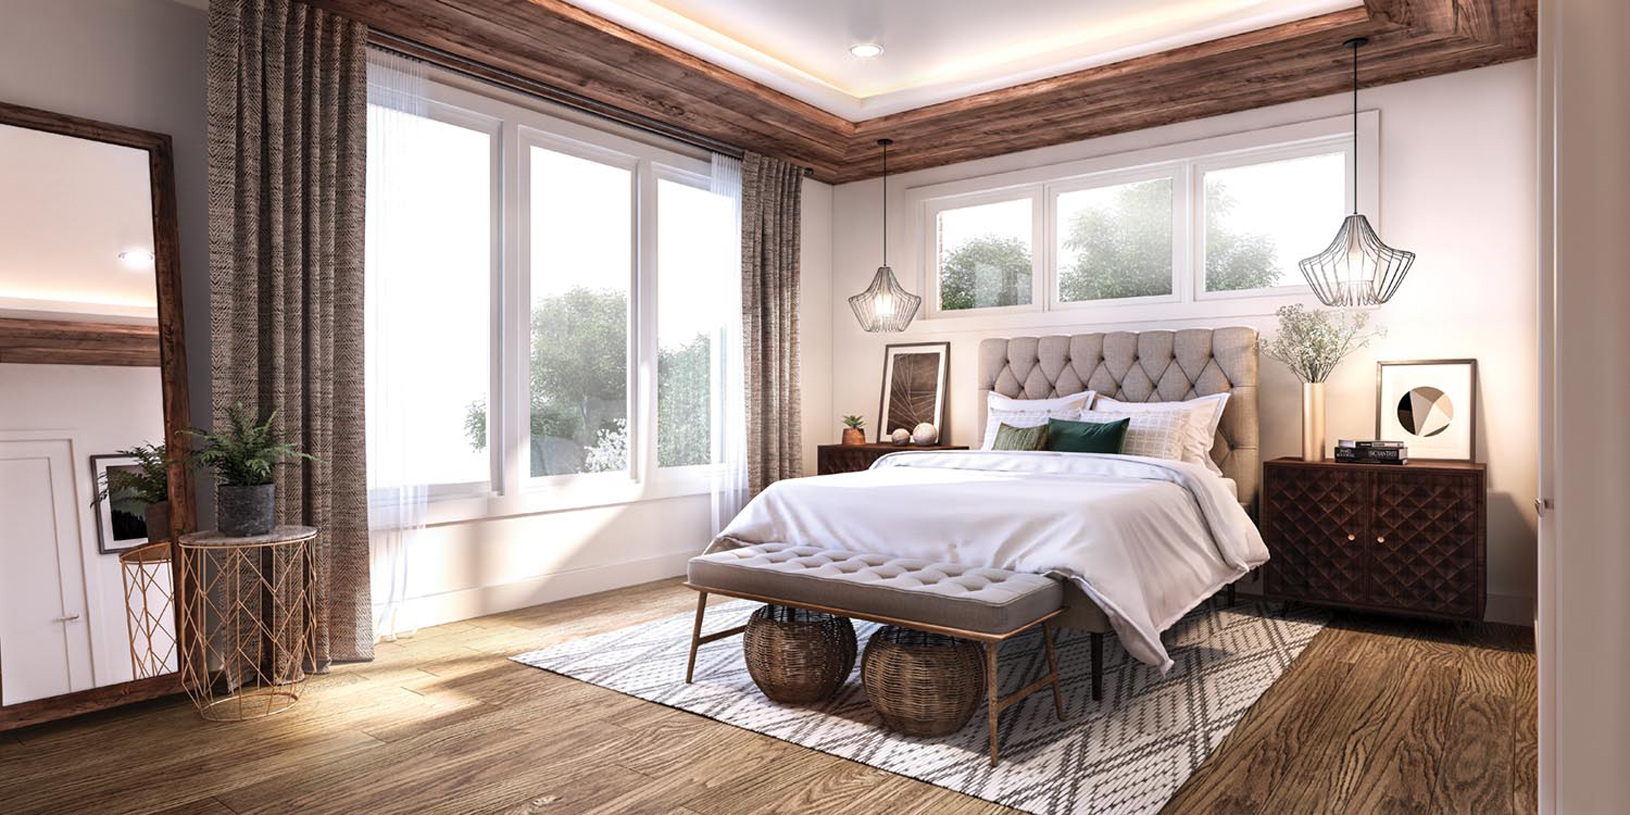 Spacious and luxurious primary bedroom suites